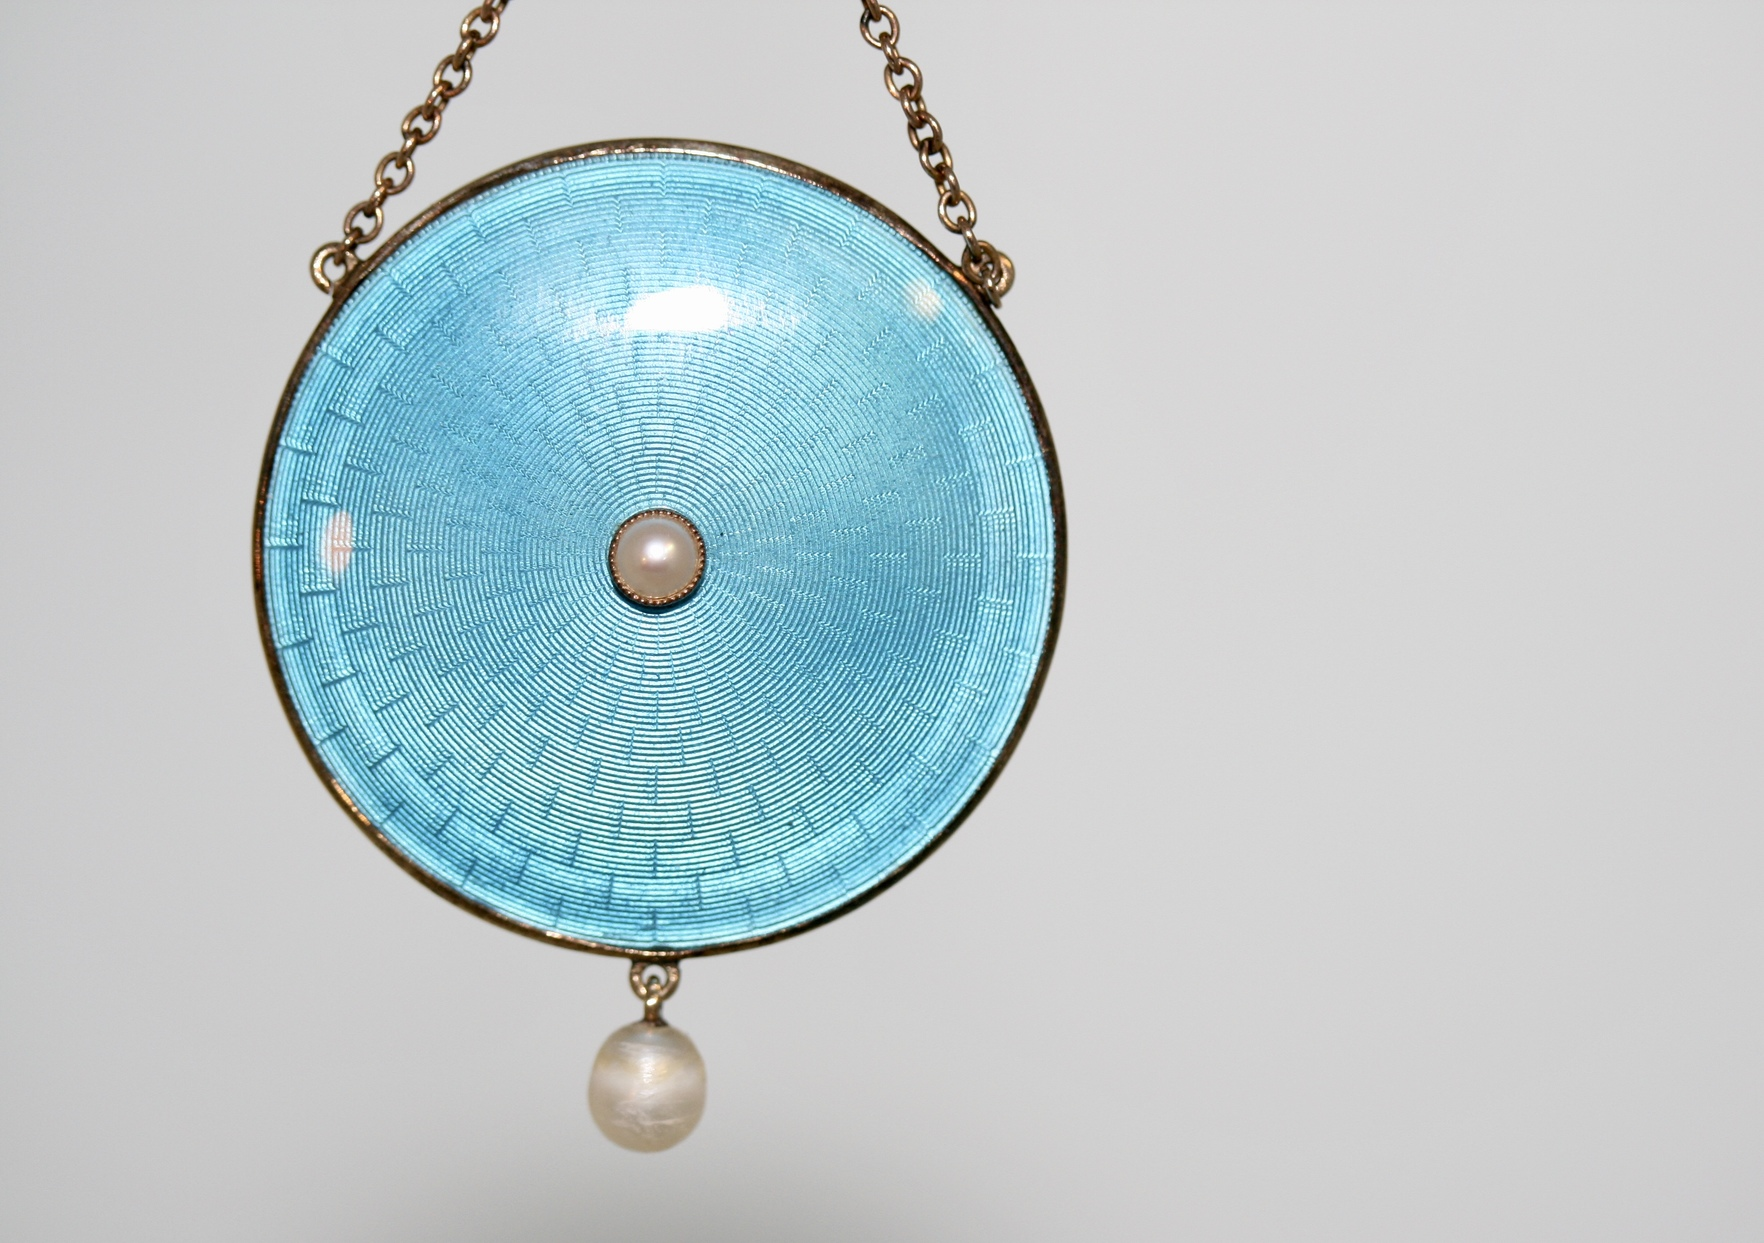 An Edwardian Gold, Pearl And Guilloche Enamel Necklace